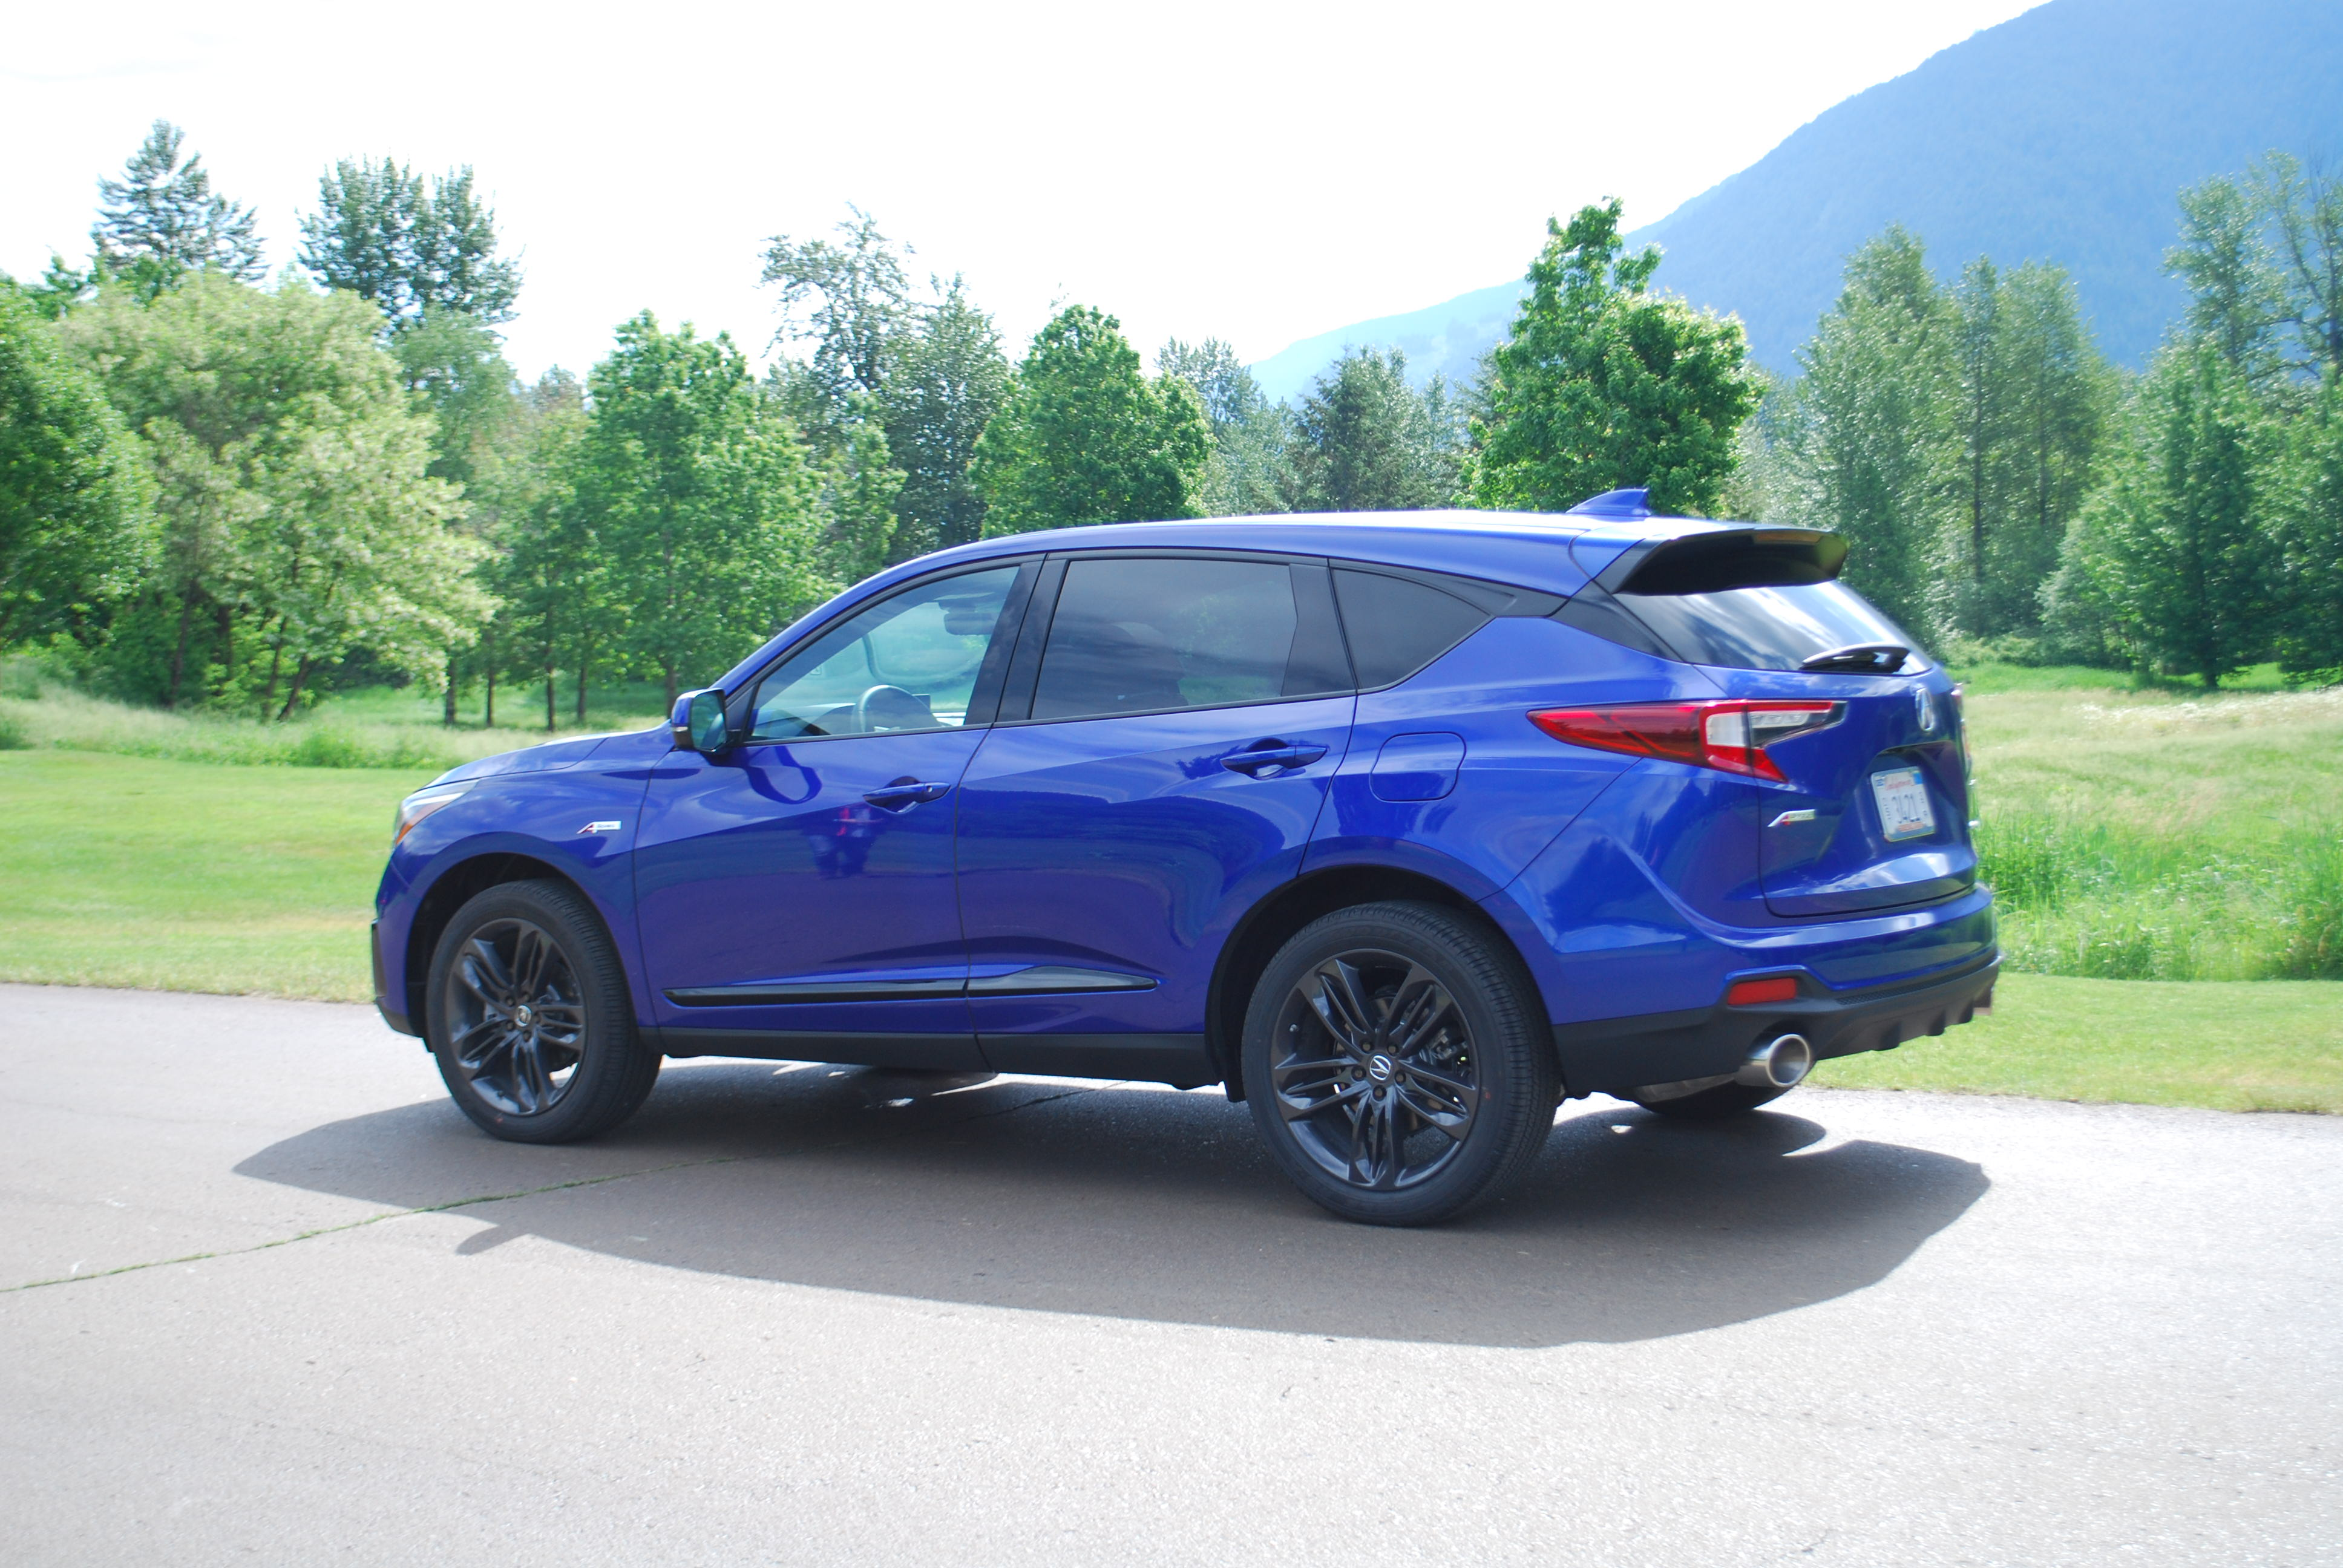 2019 acura rdx first drive - turn up the volume